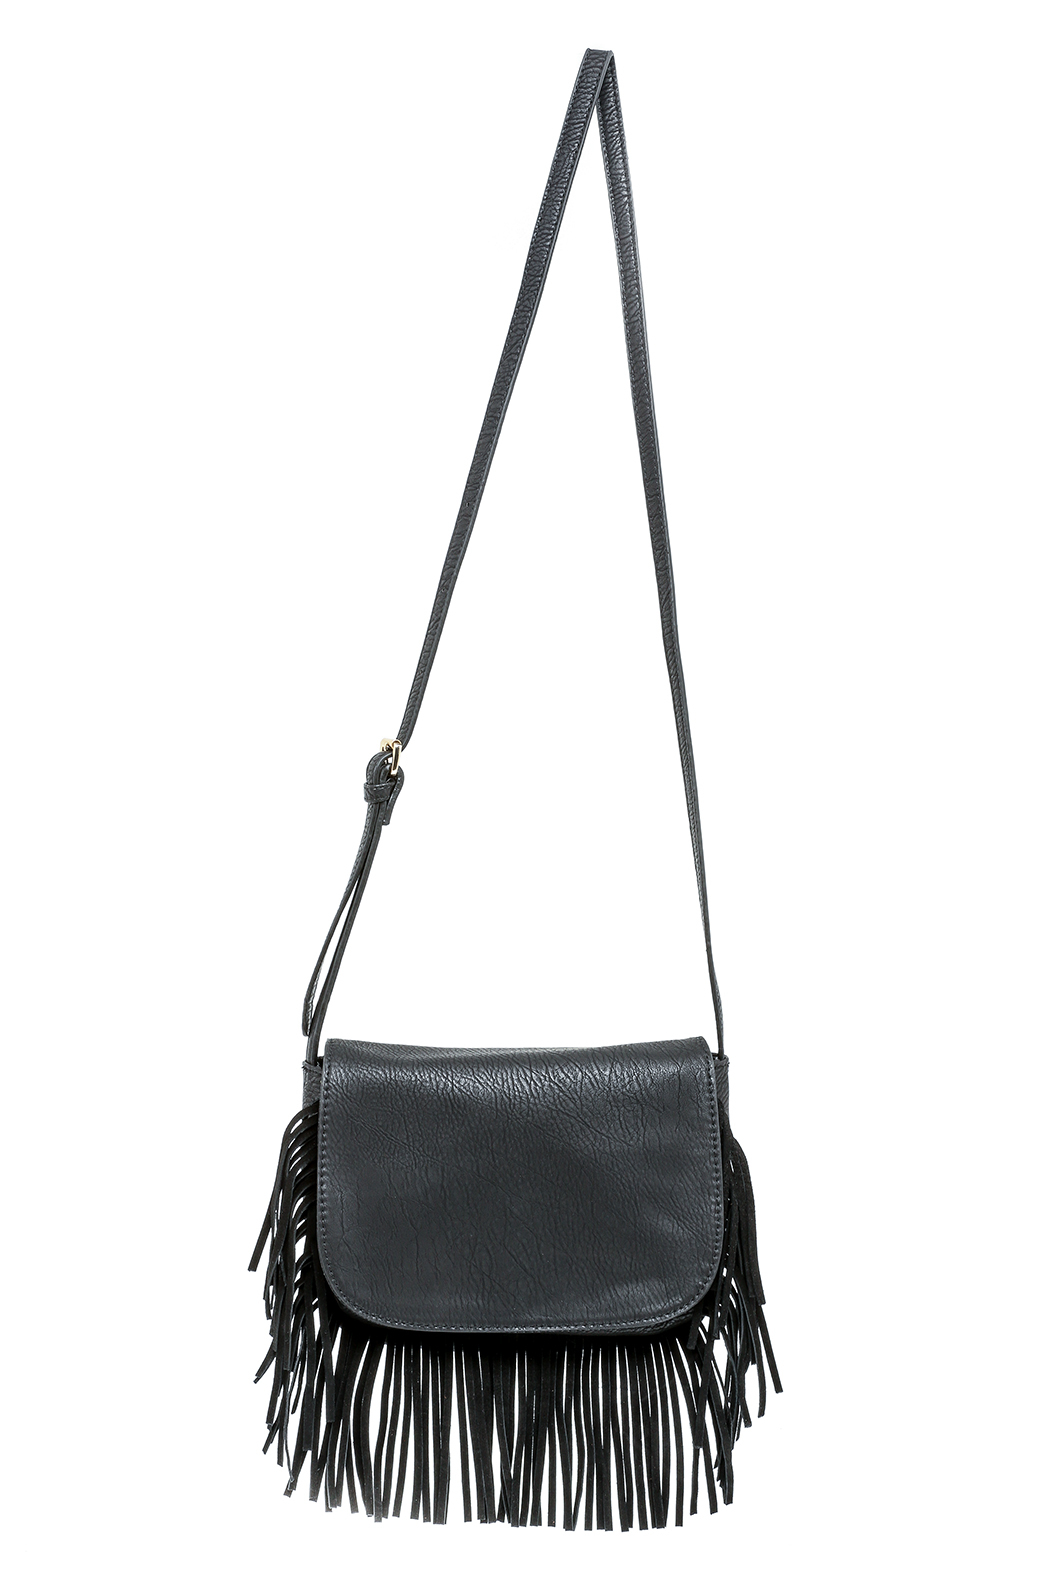 Moda Luxe Fringed Black Bag Front Cropped Image